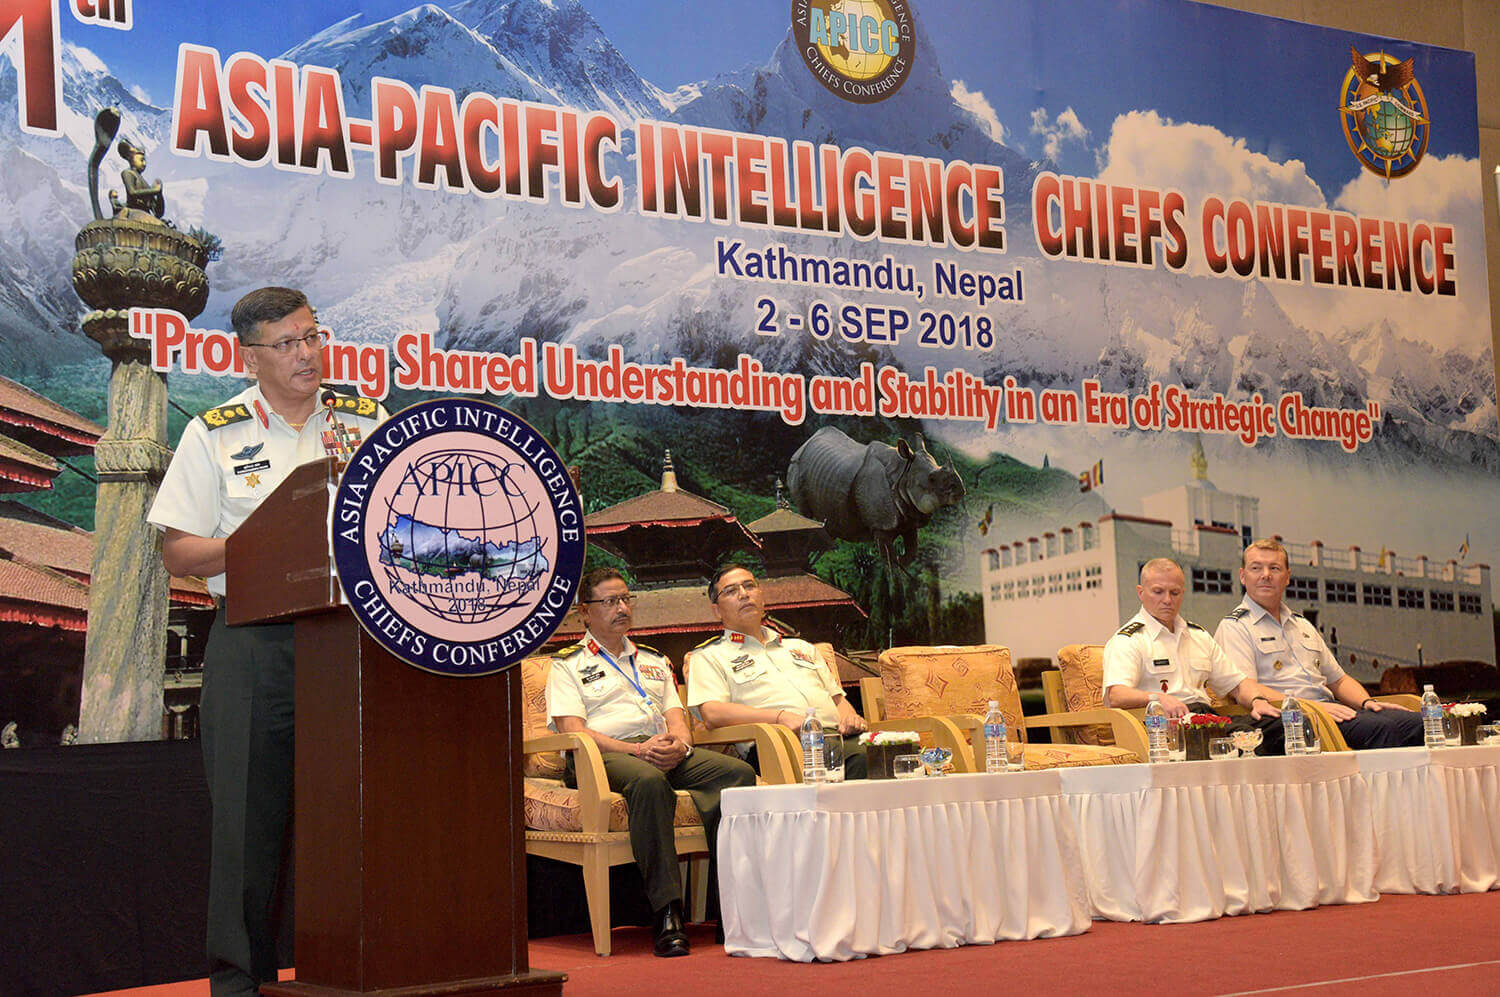 Asia-Pacific Intelligence Chiefs Conference